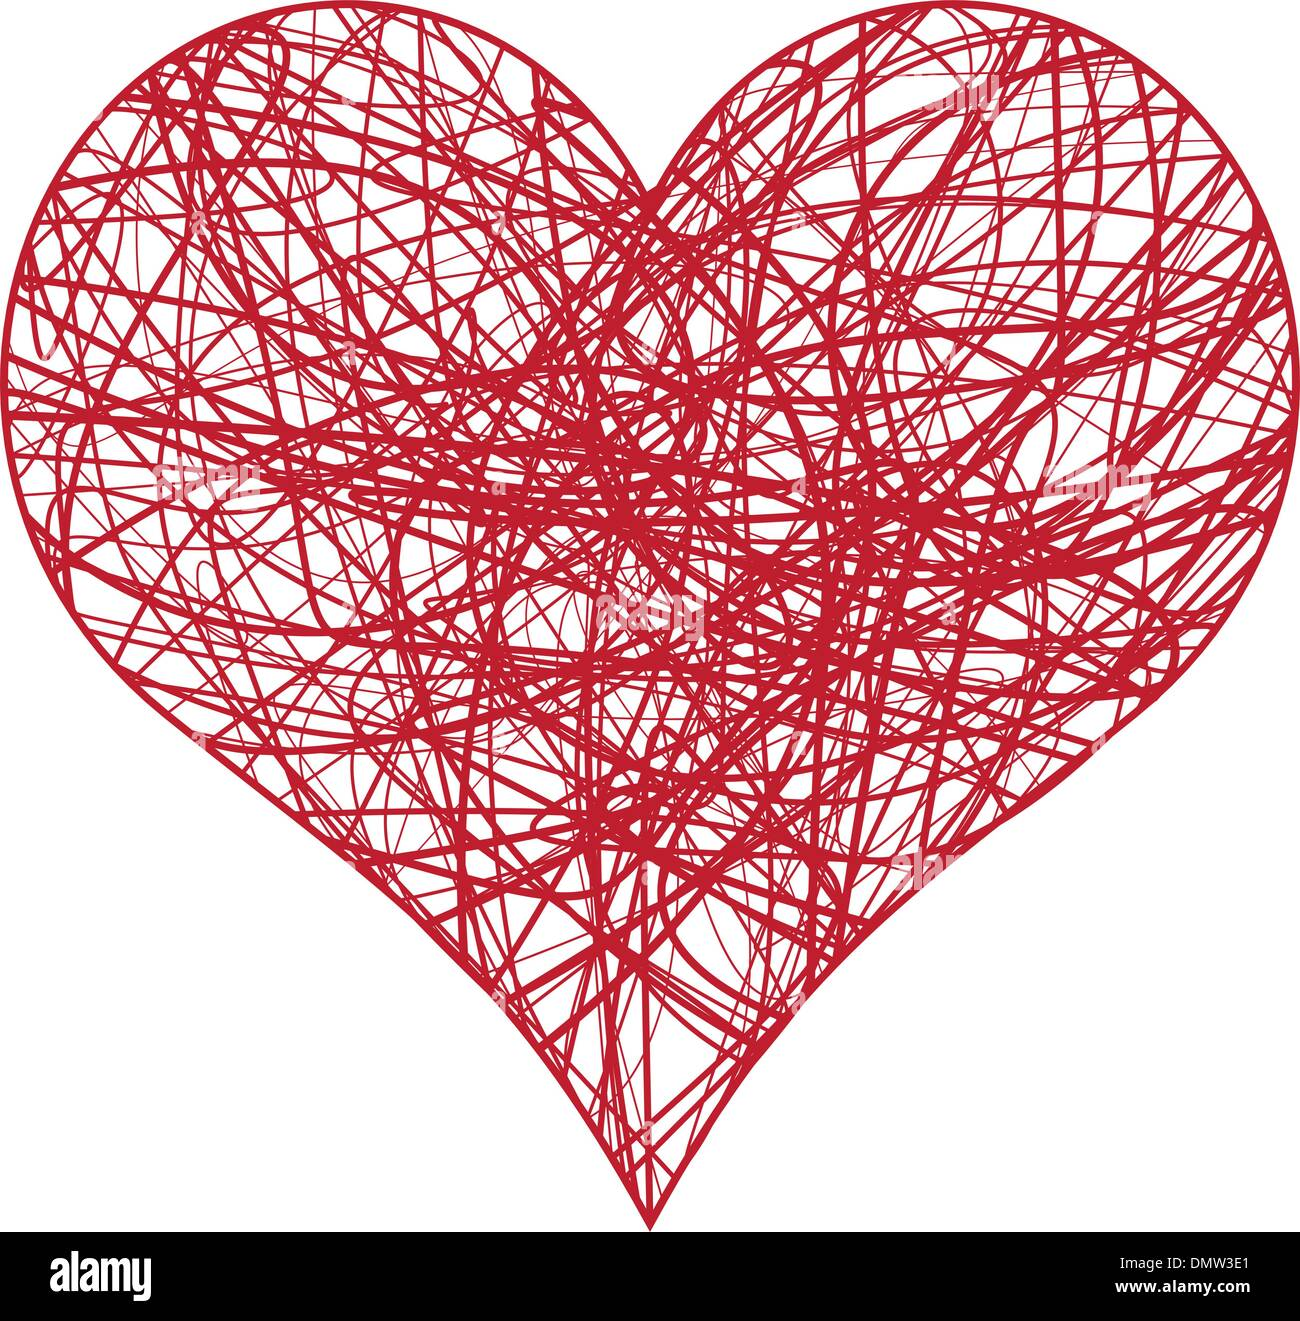 red scribble heart - Stock Image